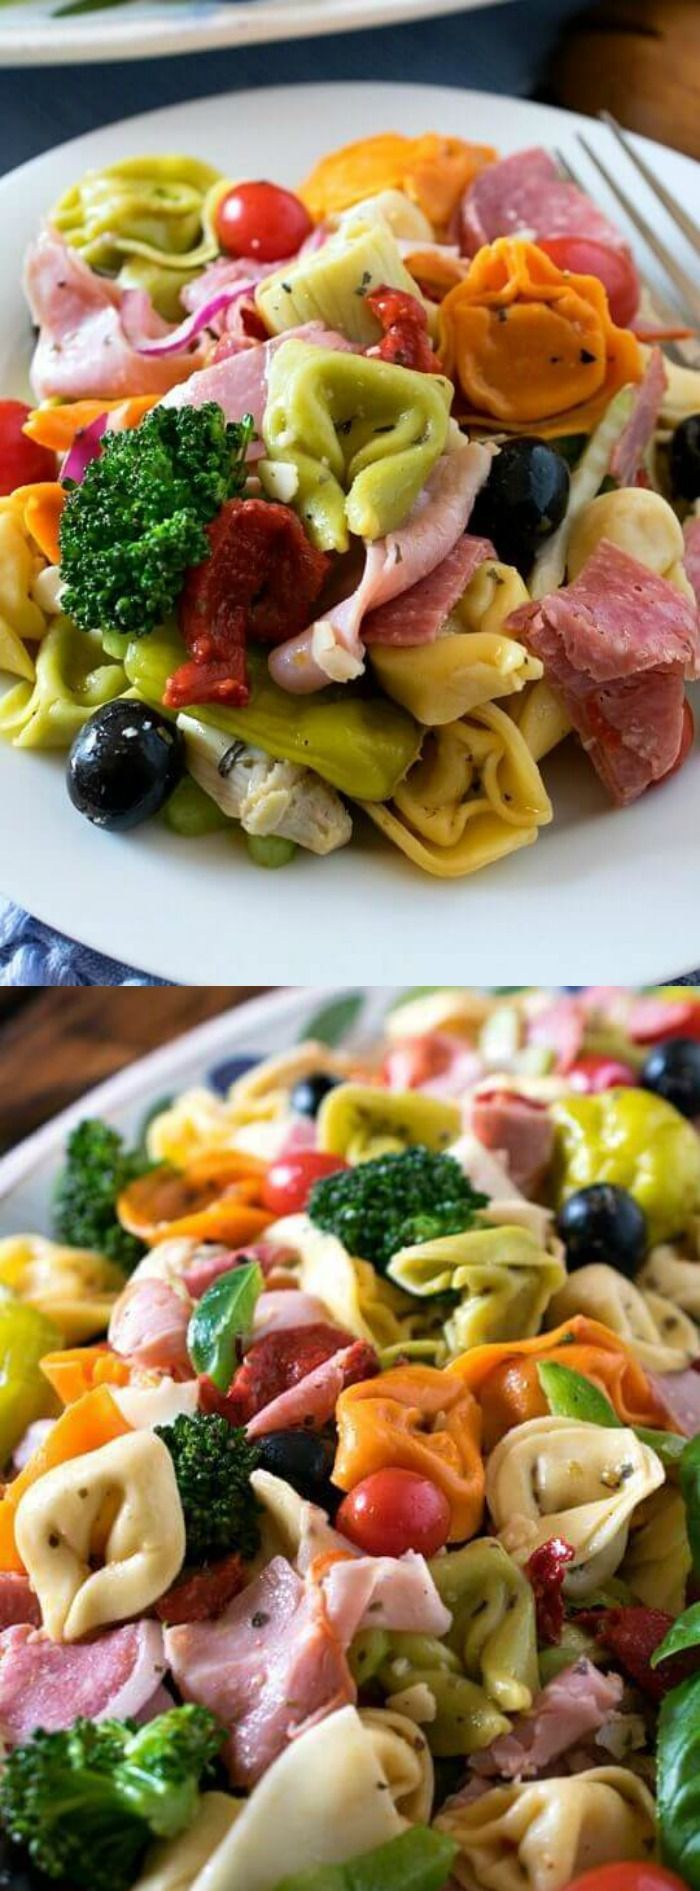 Italian Tortellini Salad - a salad packed full of veggies, capicola, salami, and provolone cheese.